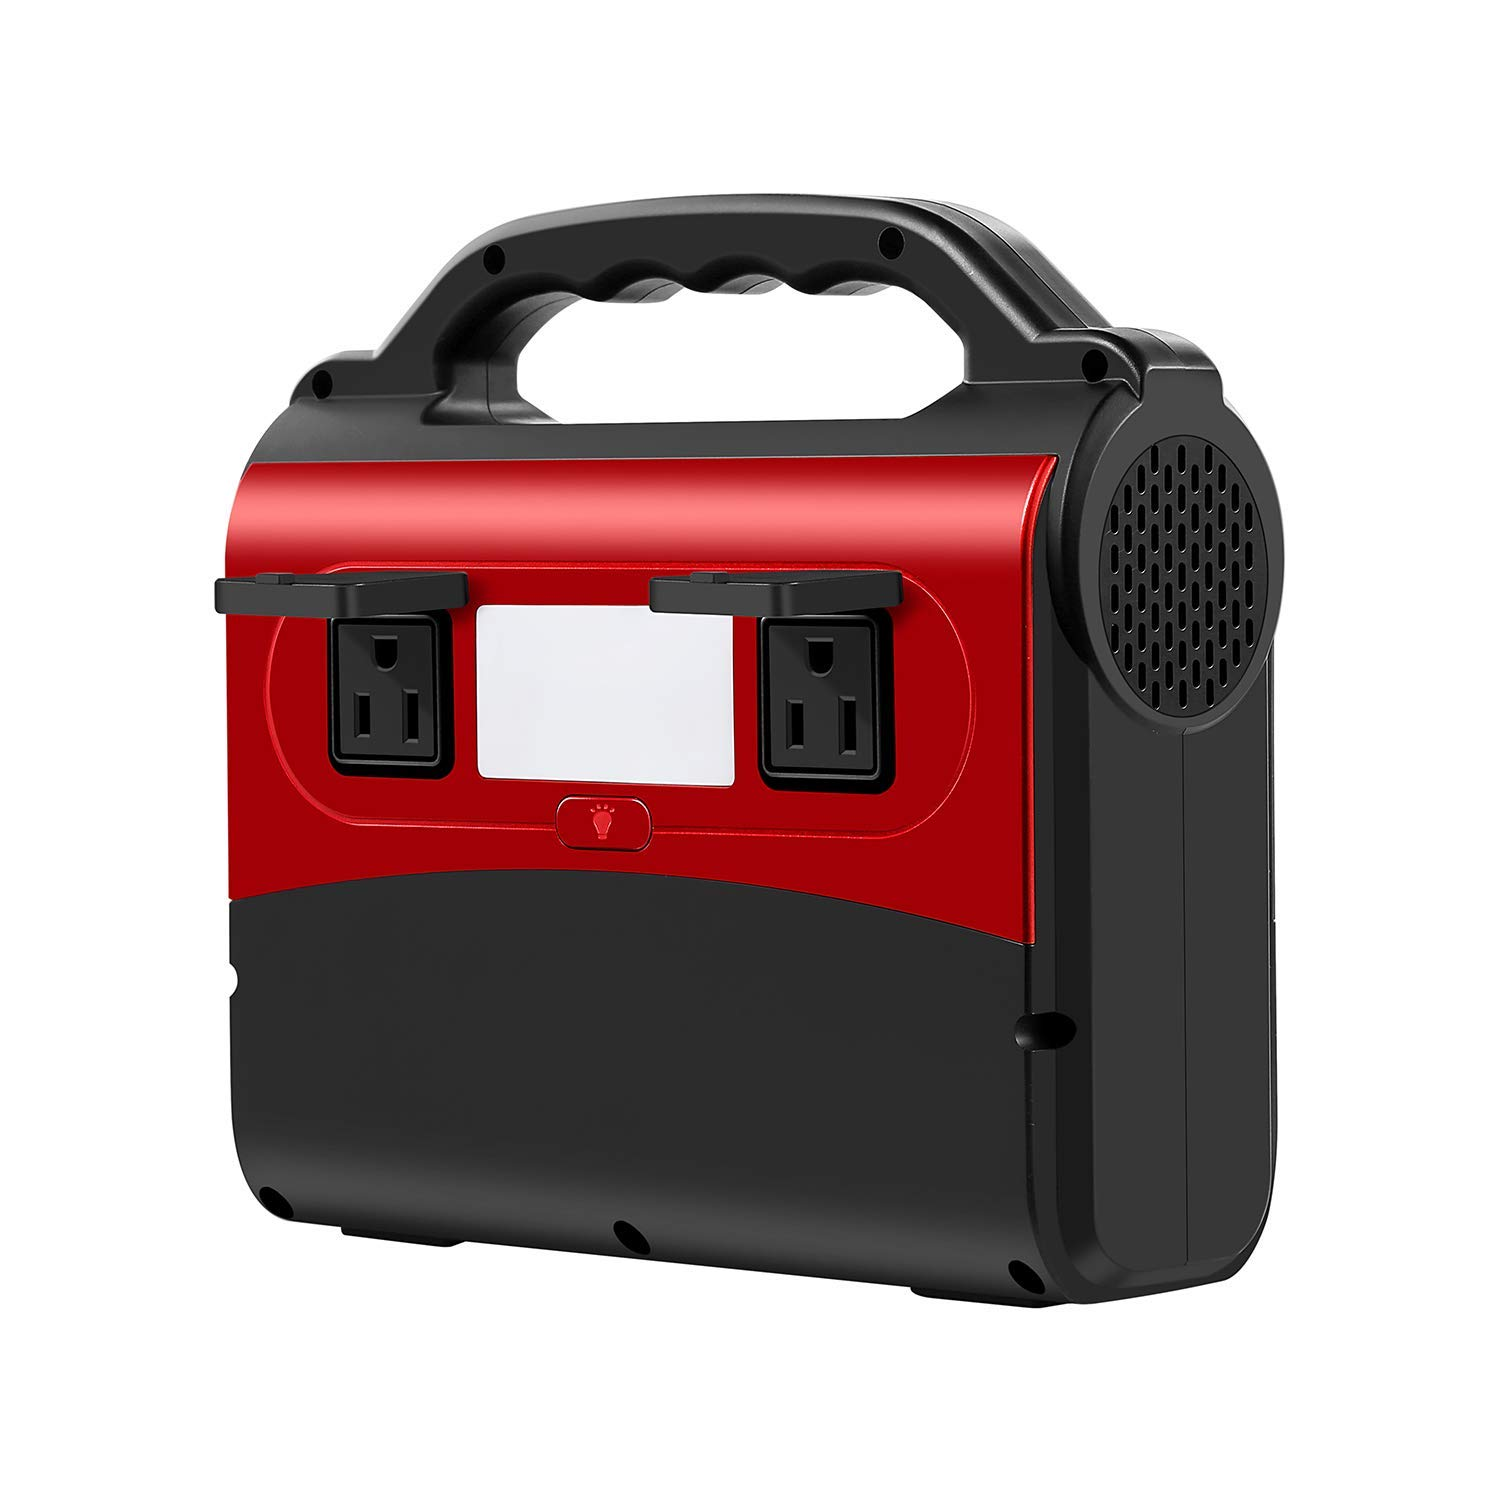 Portable Power Station, 200Wh 54000mAh AC Power Bank Solar Generator Power Charger Inverter External Battery Pack with 110V AC Outlet 12V DC USB for RV Camping Traveling Hiking Fishing CPAP Emergency